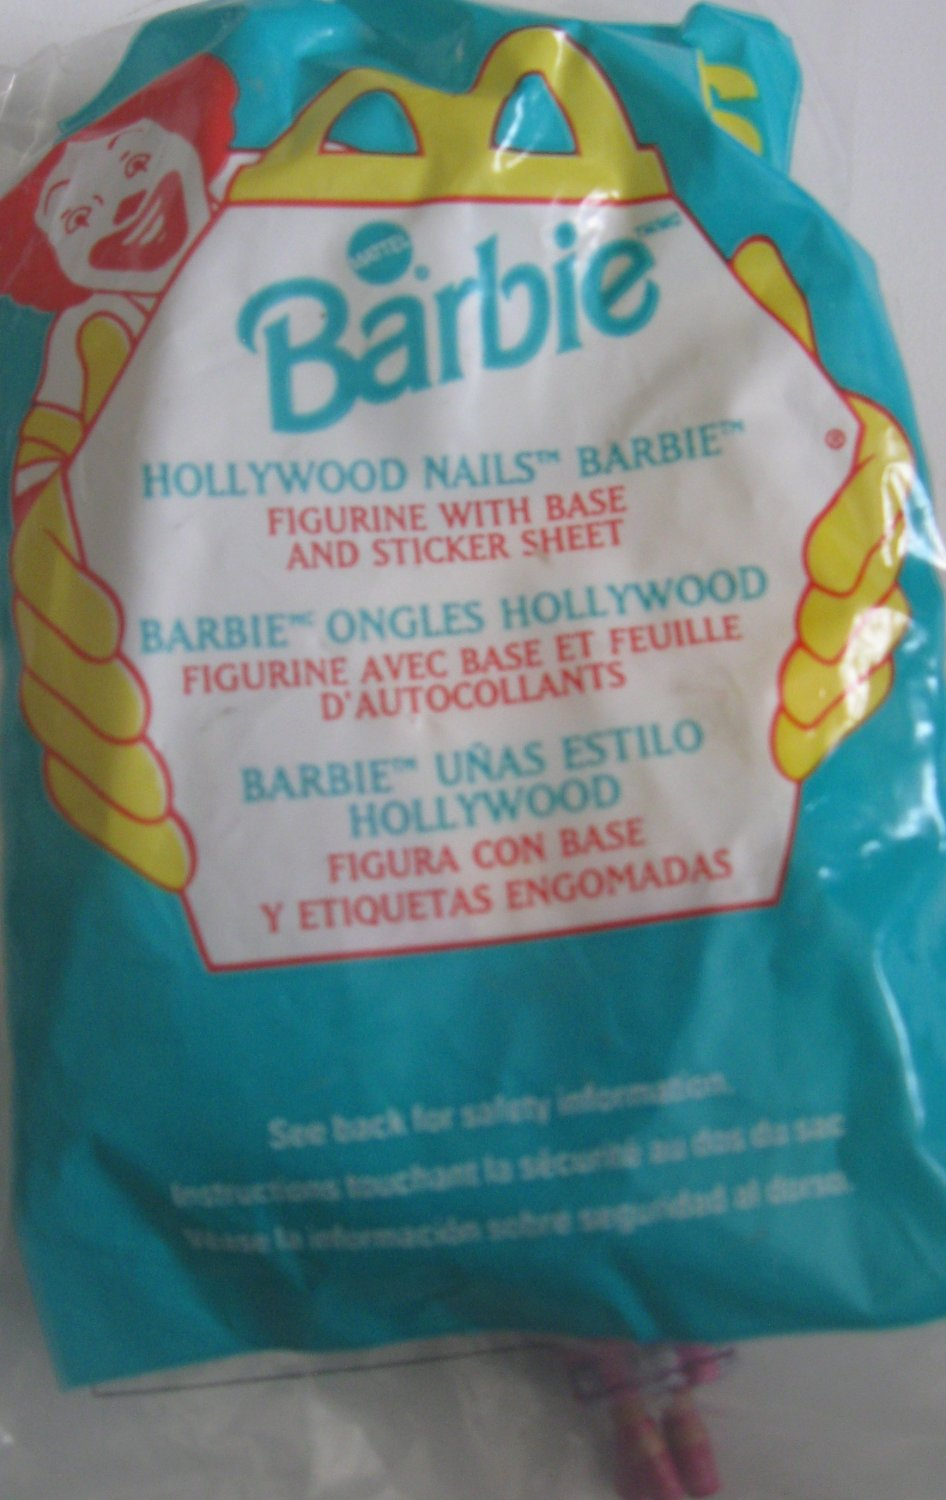 McDonald's Happy Meal Toy Barbie Hollywood Nails Barbie #6 1999